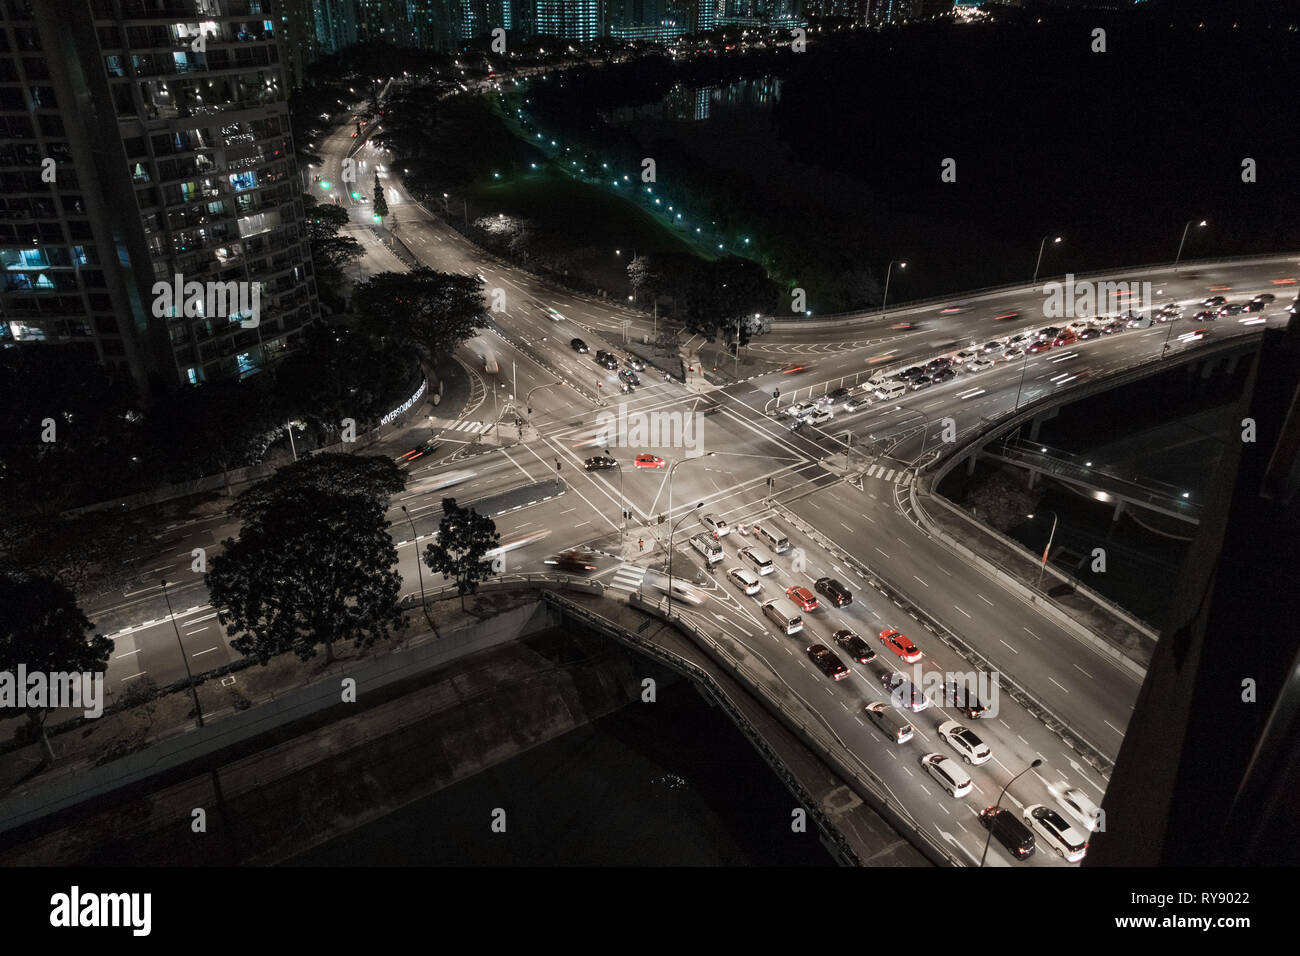 Busy 4 way road intersection, with night time car traffic - Upper Serangoon, Singapore - Stock Image